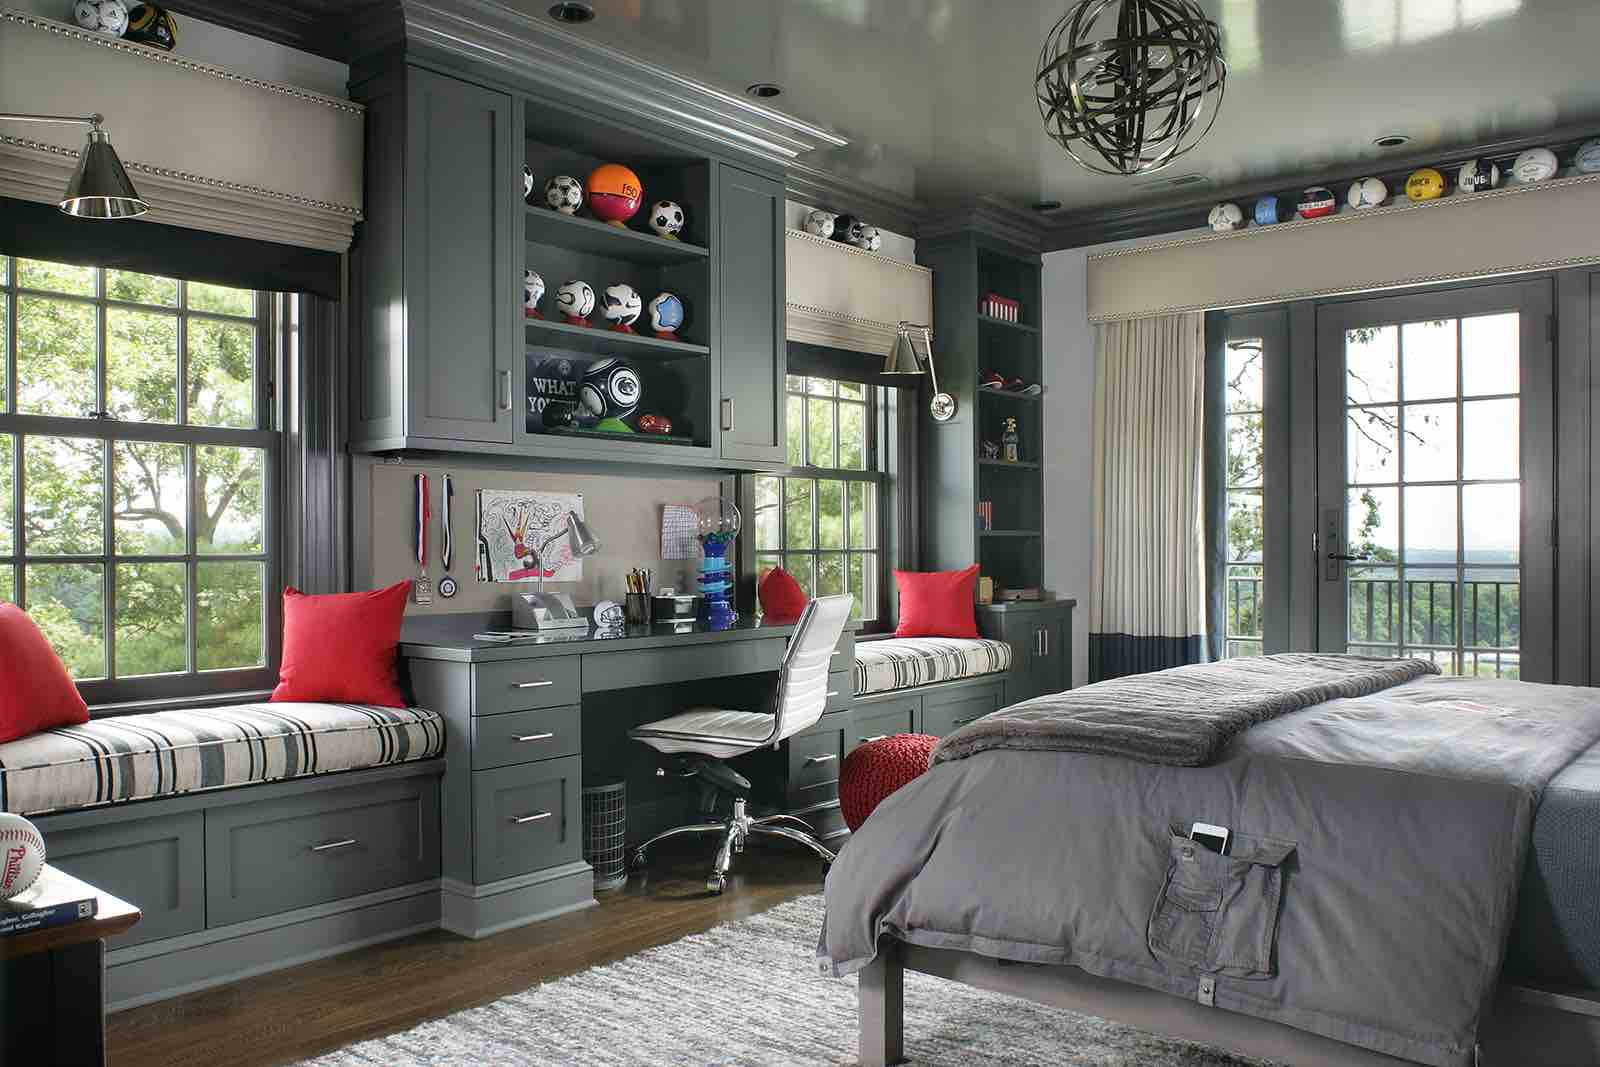 Cool Guy Bedrooms Decorating The Dream Dorm Room Valerie Grant Interiors